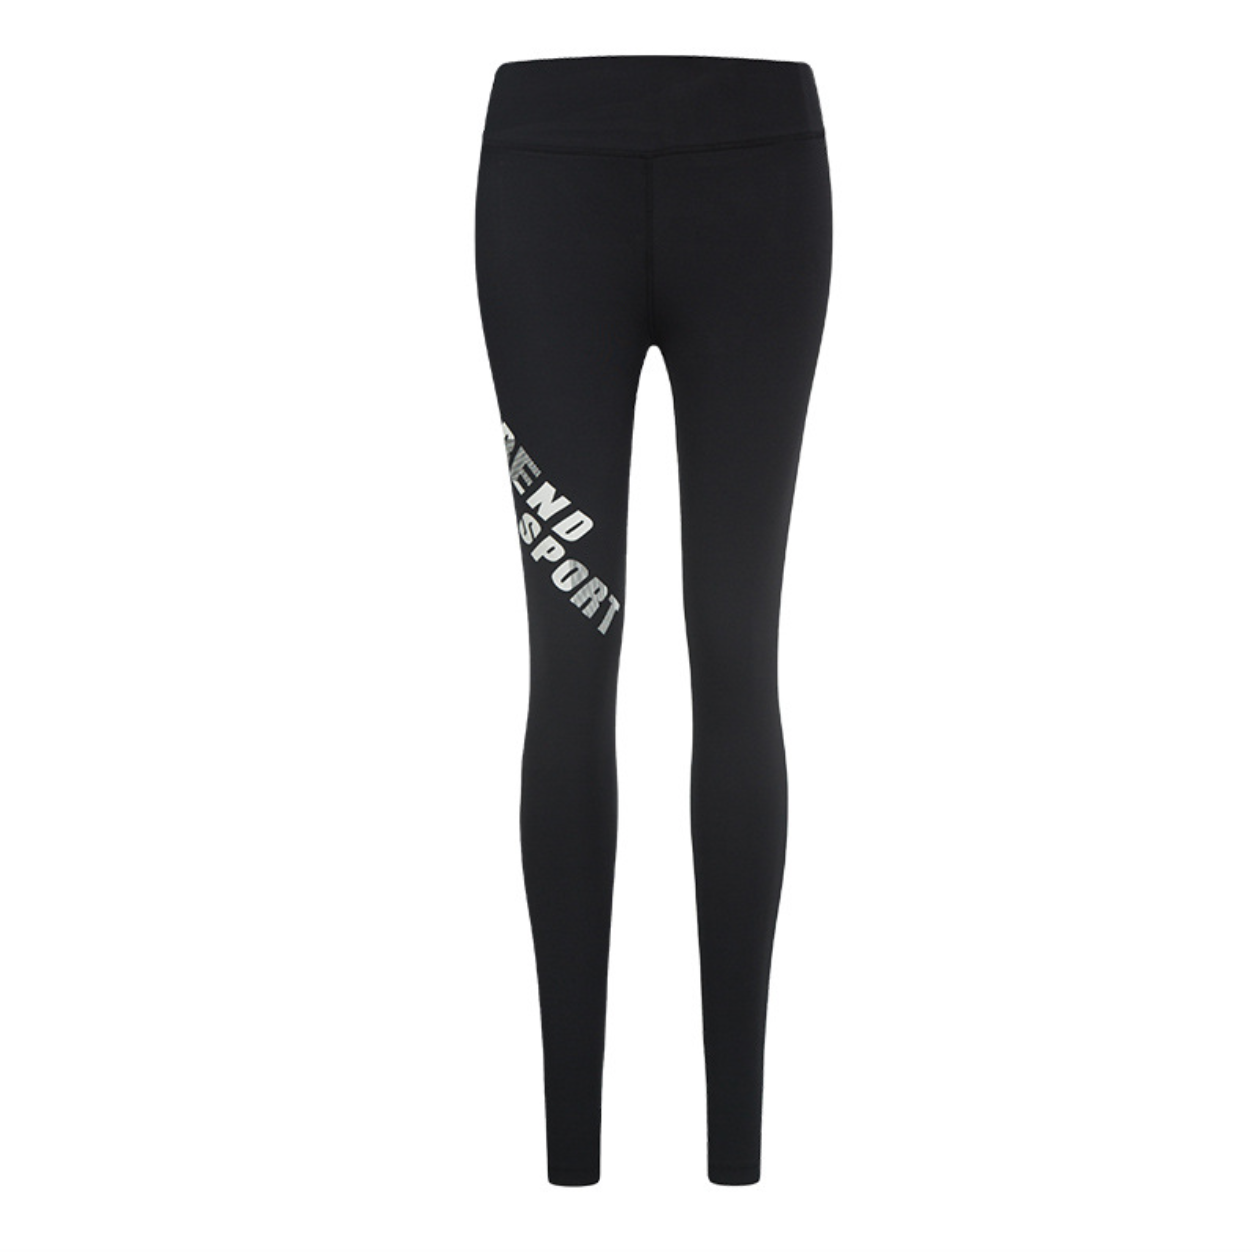 Sexy Black Character Prints Mid Rise Legging Yoga Pants